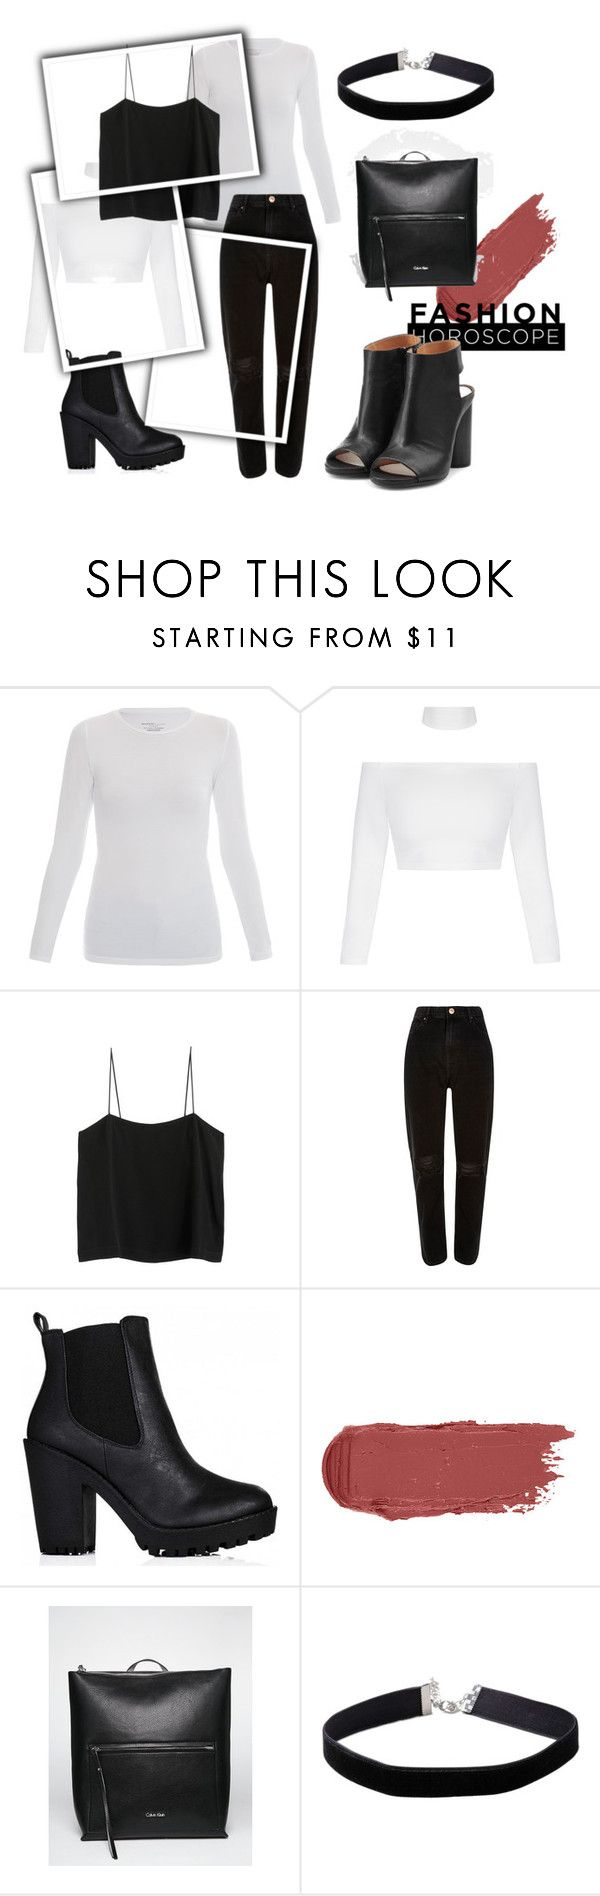 """098"" by alena-mendesh on Polyvore featuring мода, Majestic, River Island, Calvin Klein, Miss Selfridge и Maison Margiela"